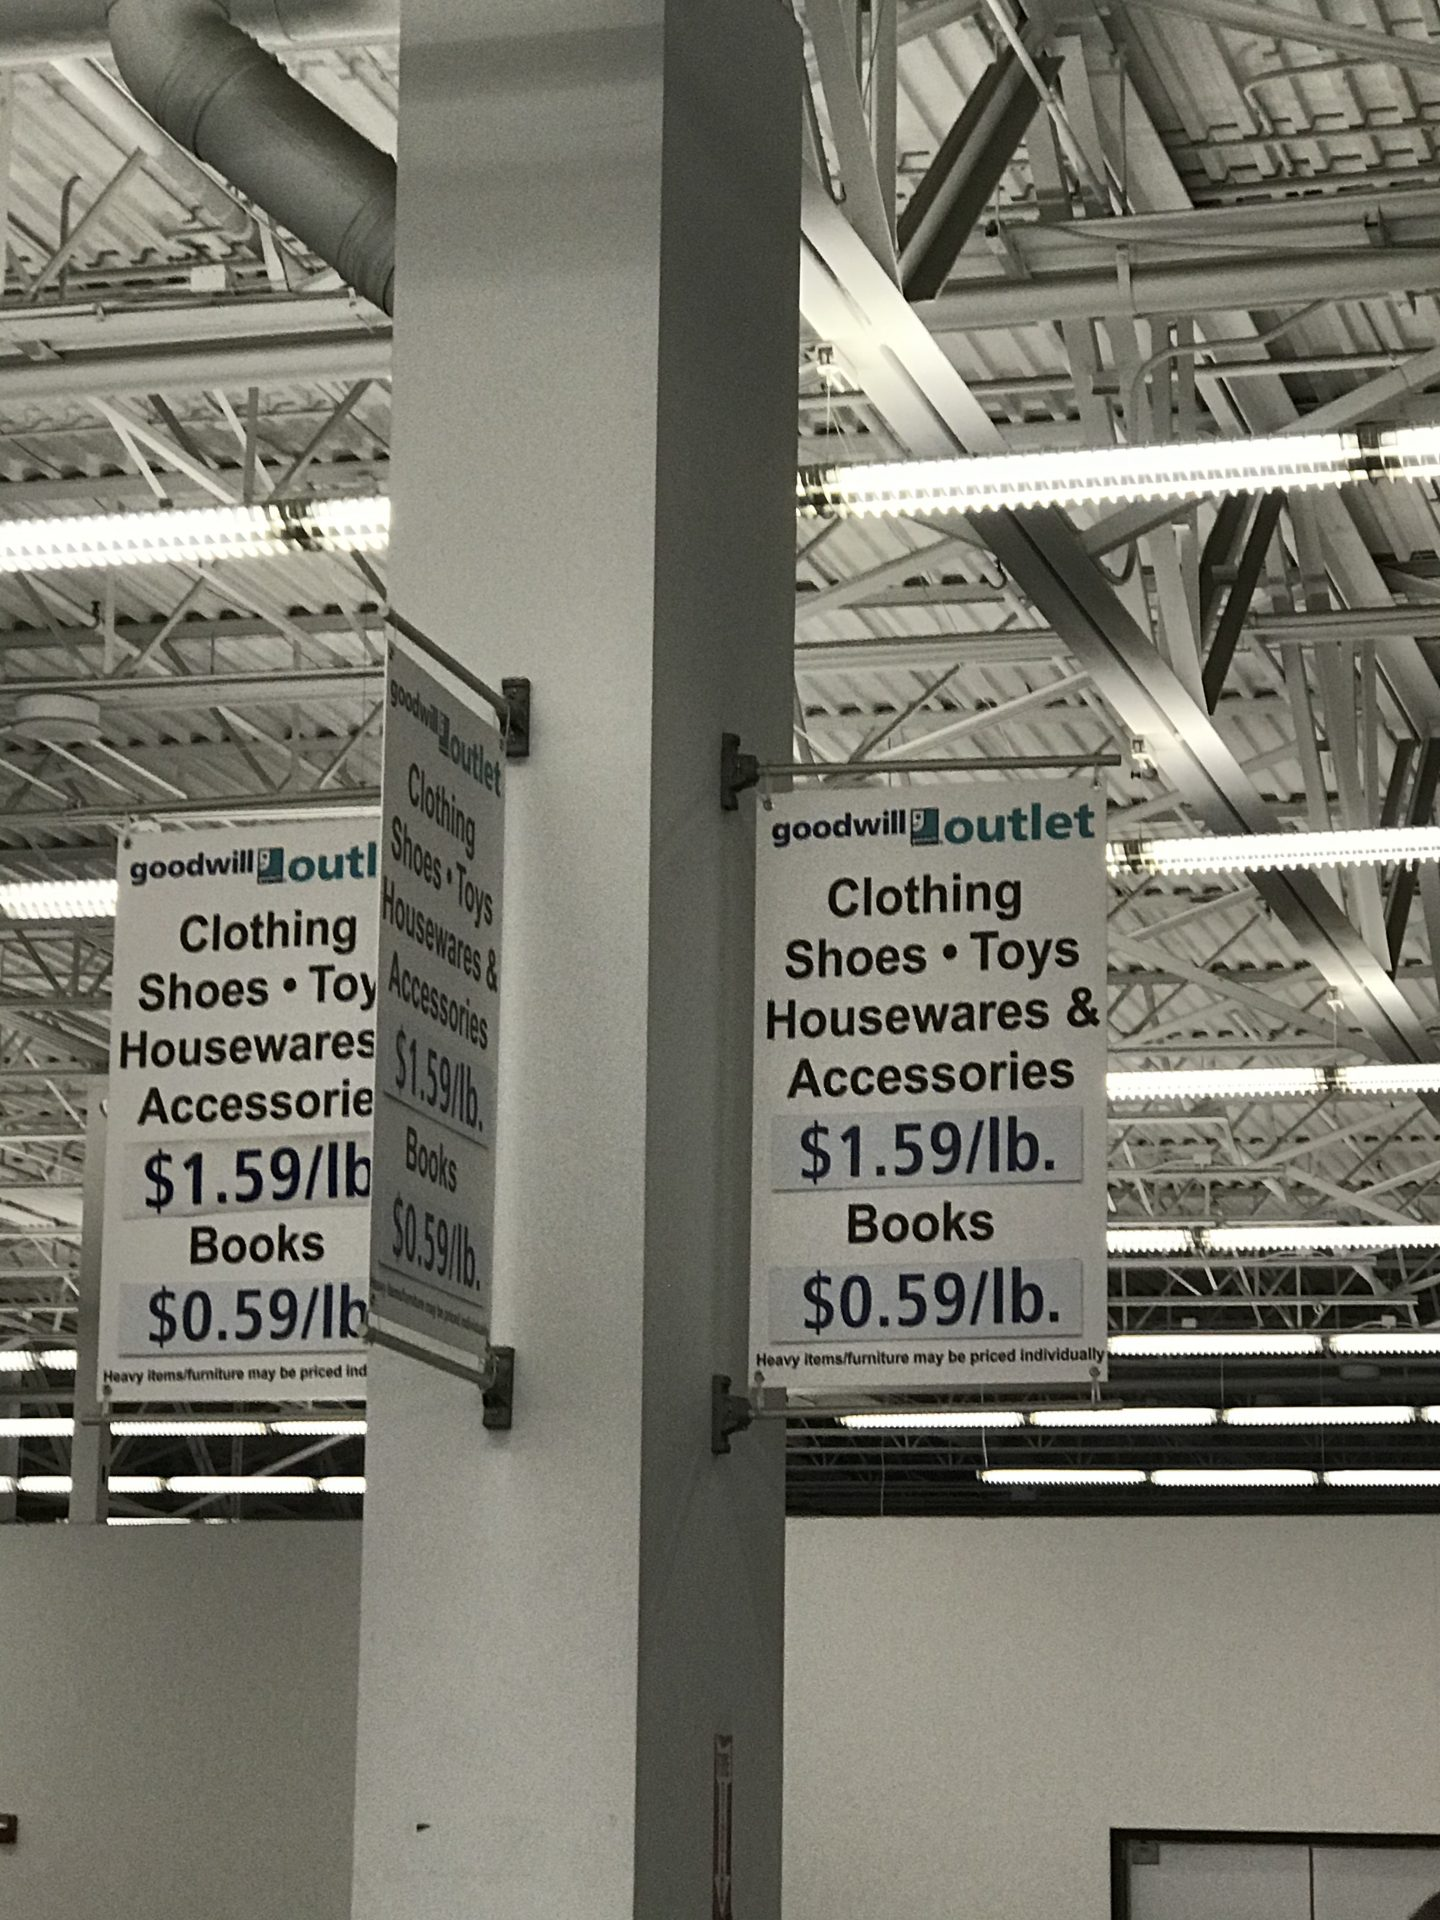 The price of items at Goodwill stores